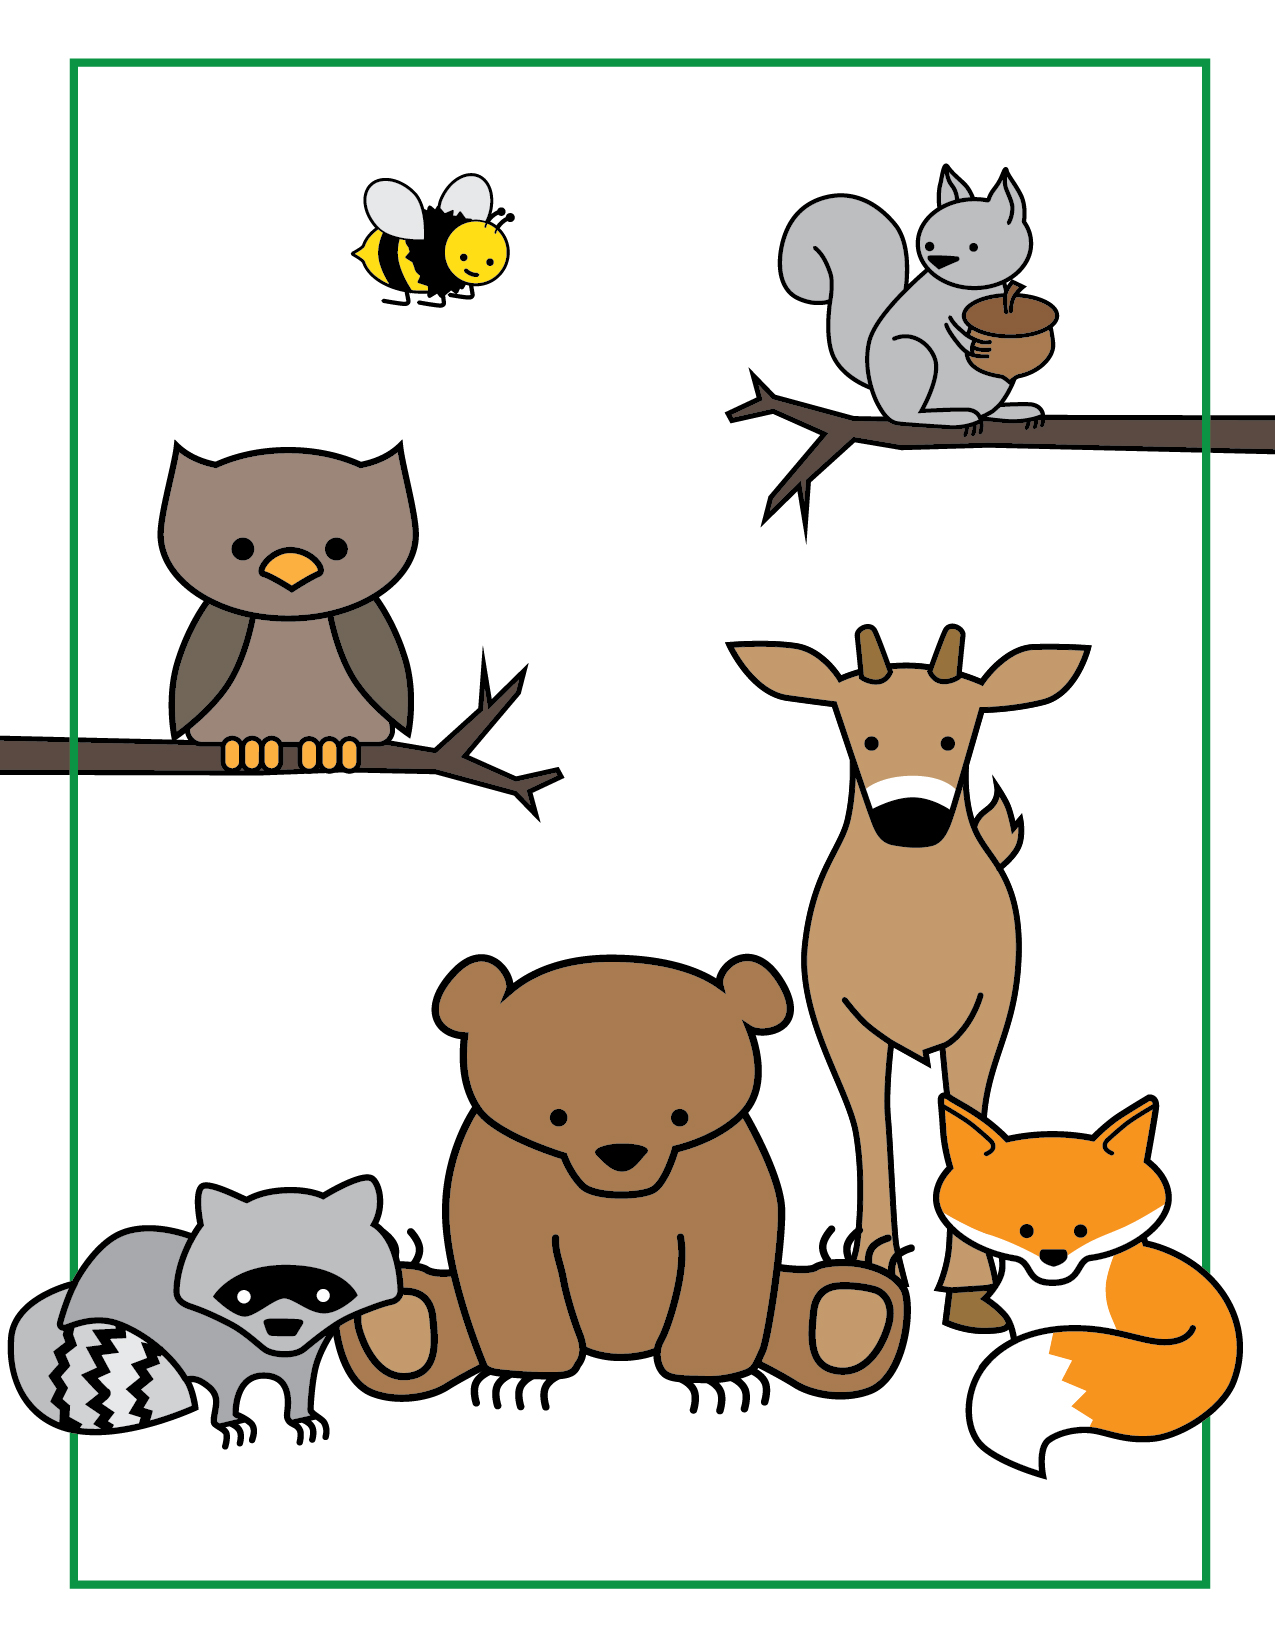 woodland-critters2-01.jpg